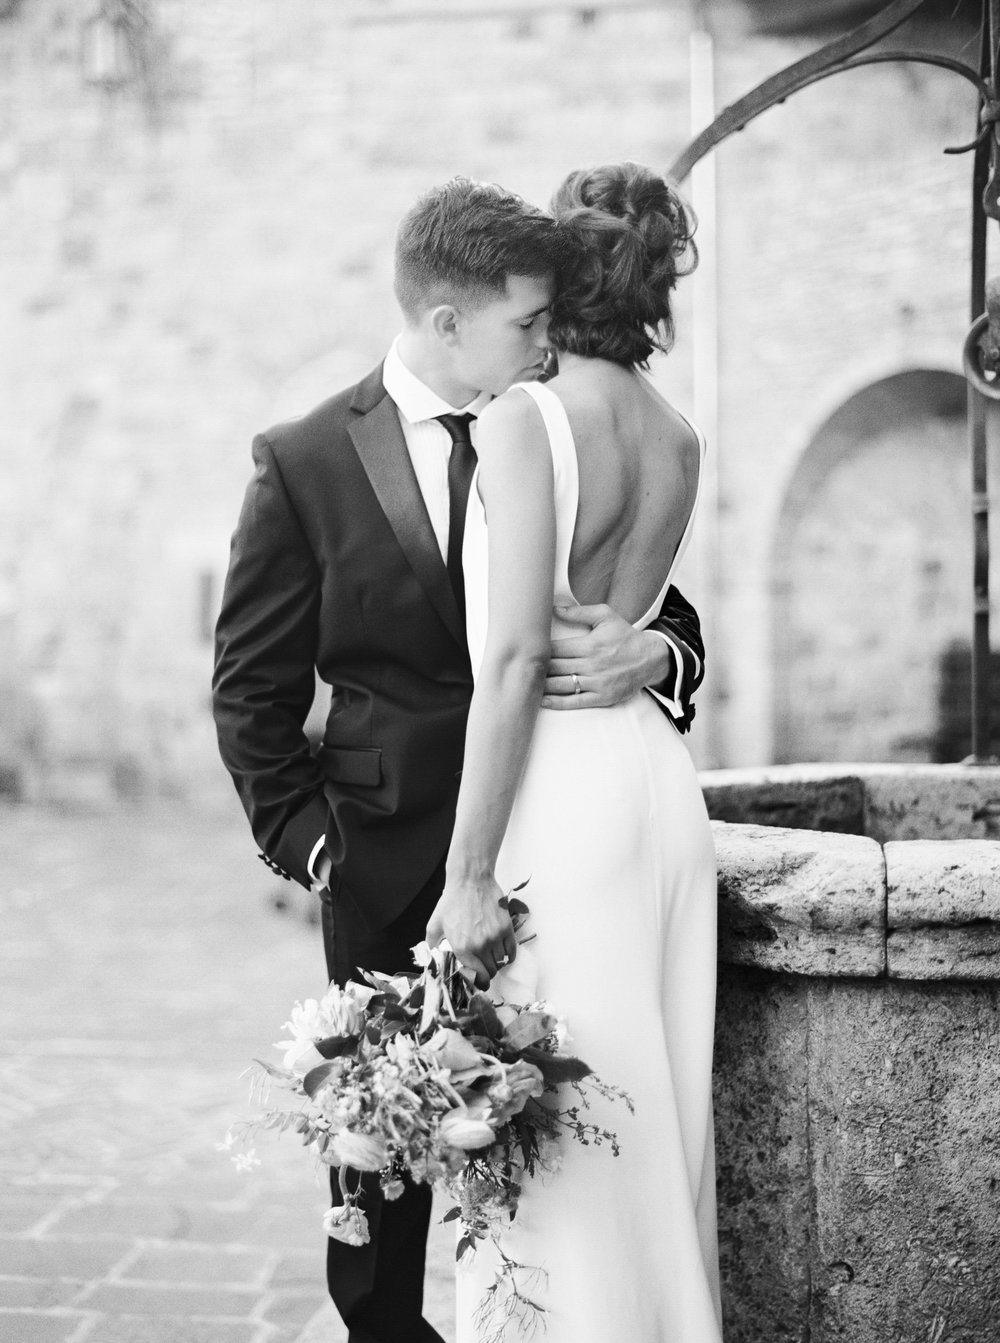 006napa_wedding_photographer_and_videographer_destination_and_elopement_photography.jpg